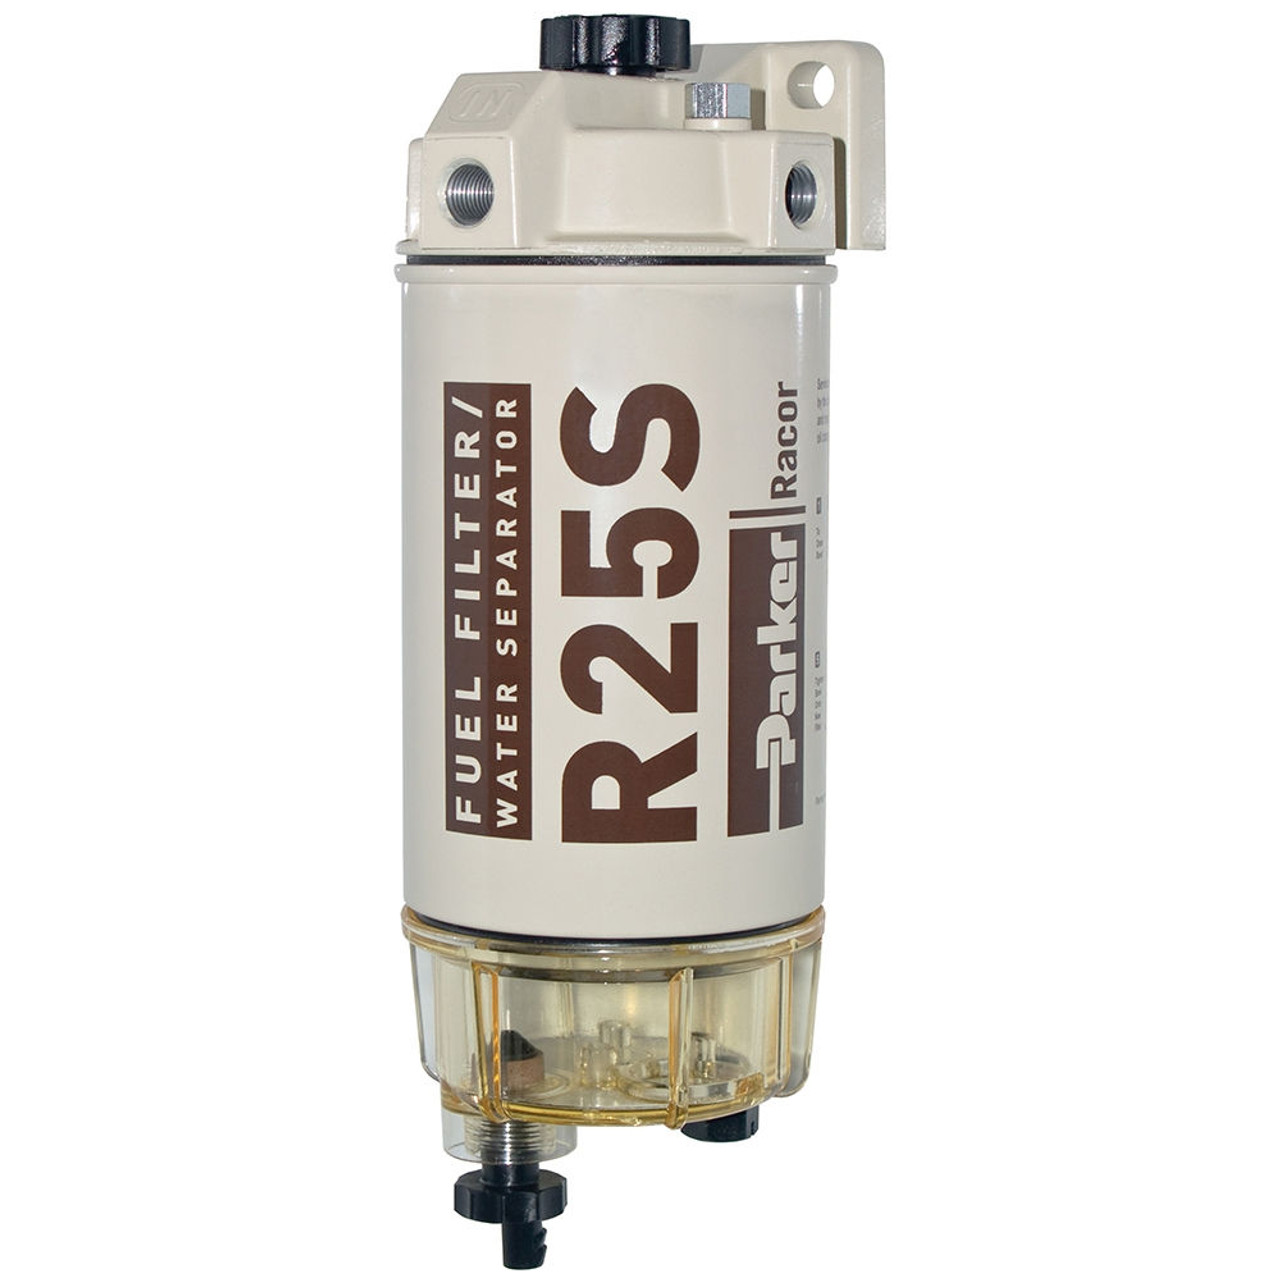 Racor 200 Series 45 GPH Low Flow Diesel Fuel Filter/Water Separator 245  Filter Assembly